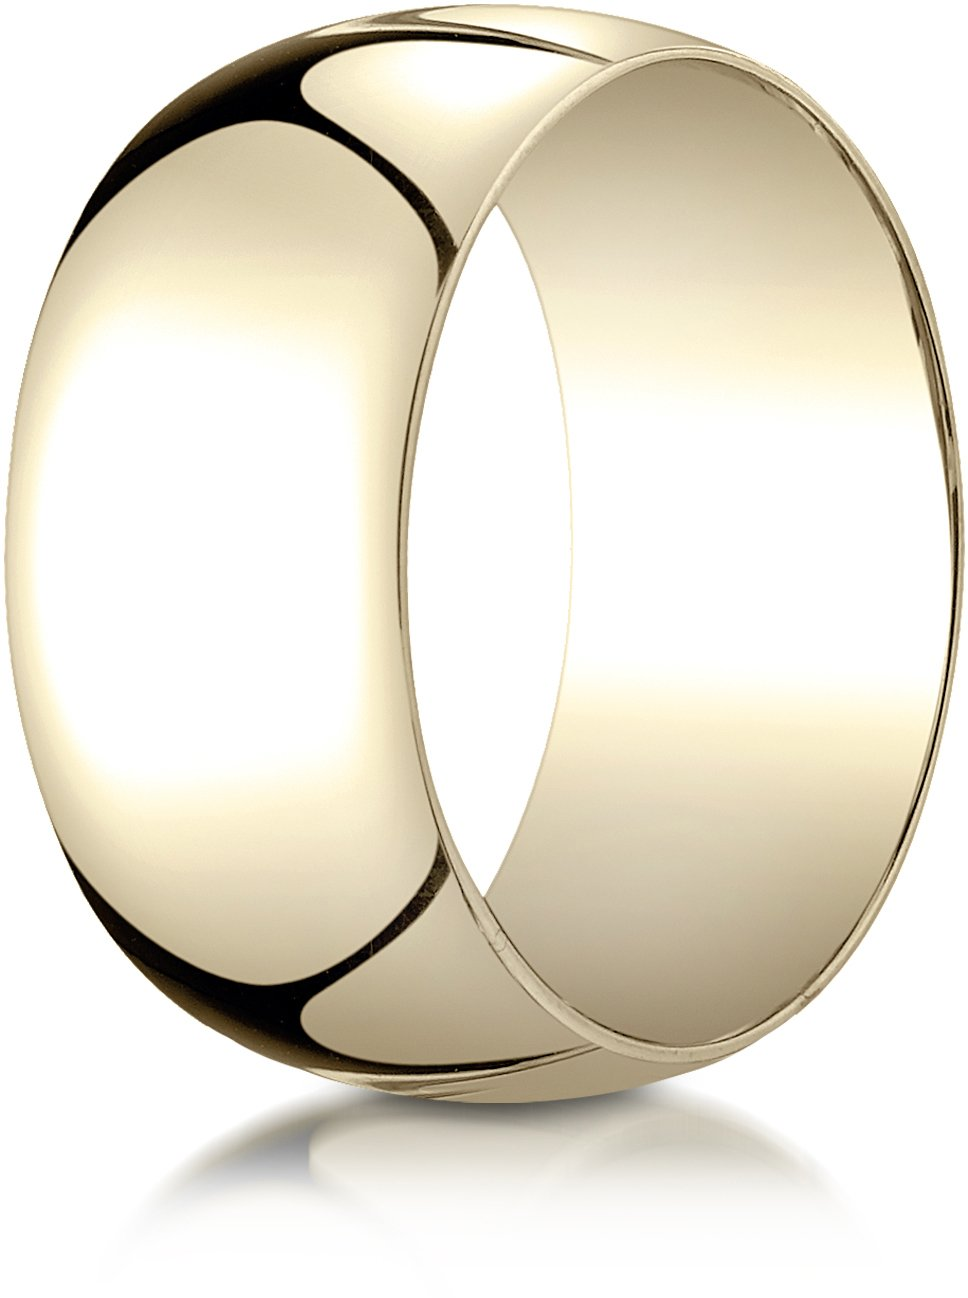 Benchmark 14K Yellow Gold 10mm Slightly Domed Traditional Oval Wedding Band Ring, Size 11